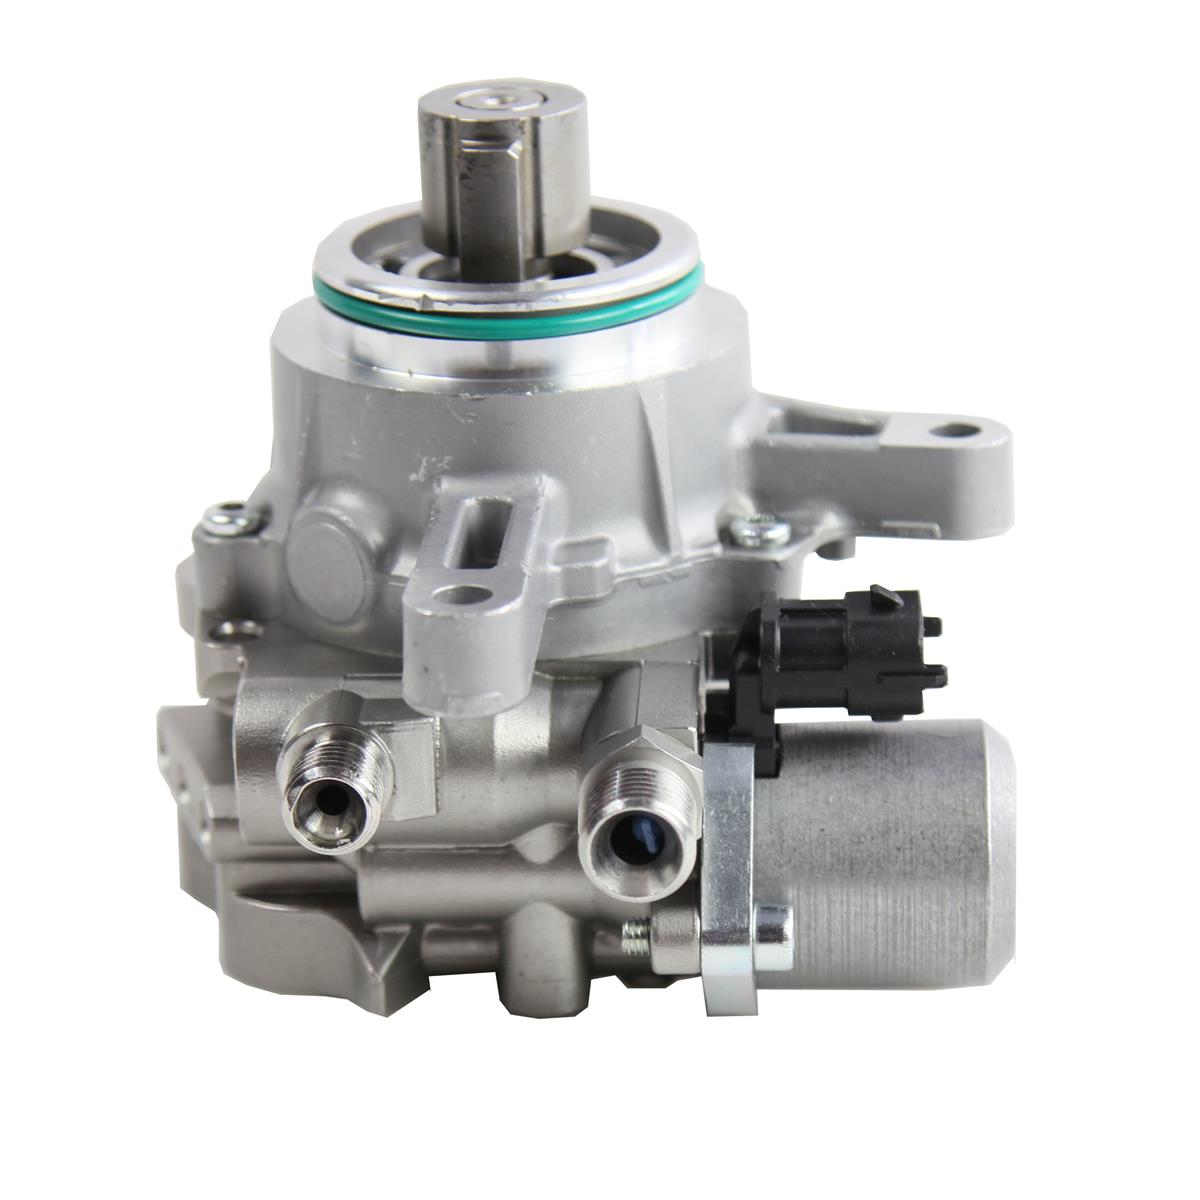 Acouto Car Replacement High Pressure Fuel Pump for Porsche Cayenne S GTS 2008-2010 948110316HX